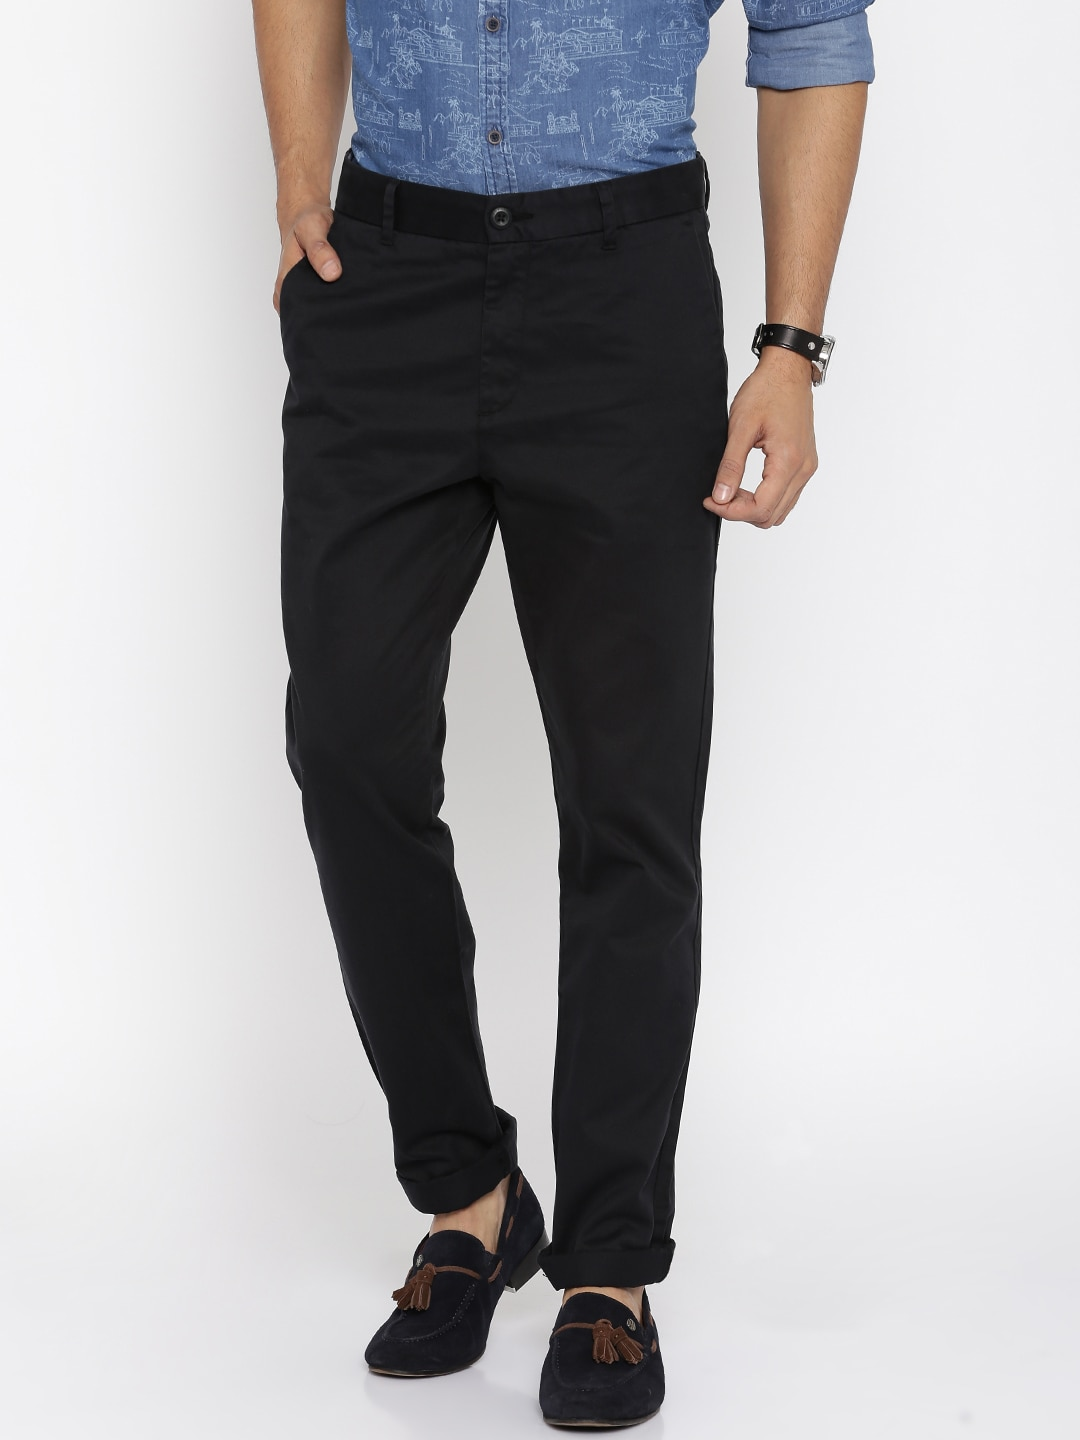 U.S. Polo Assn. Men Black Solid Slim Fit Chinos